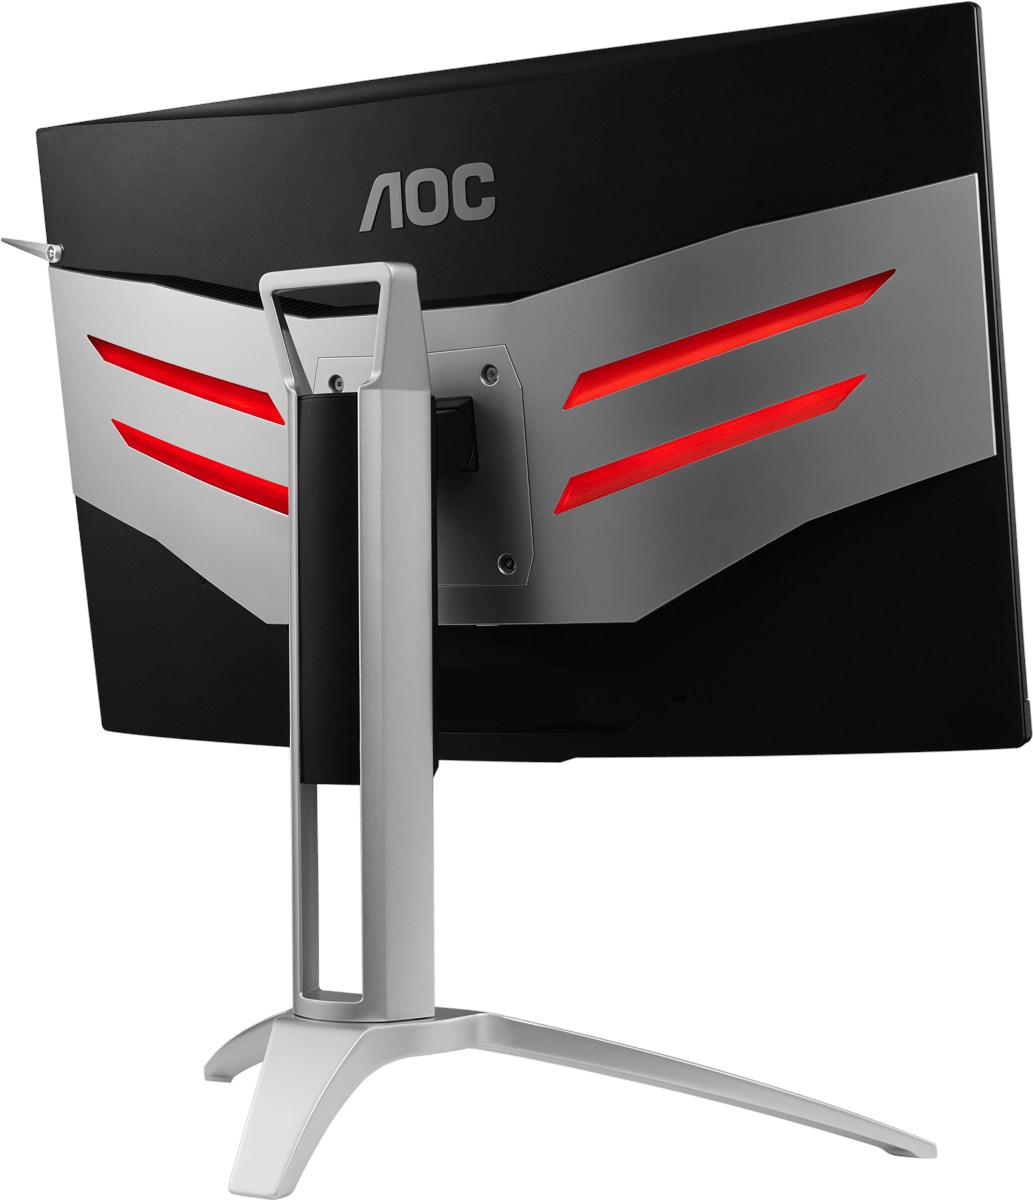 AOC AG272FCX6 165Hz Review